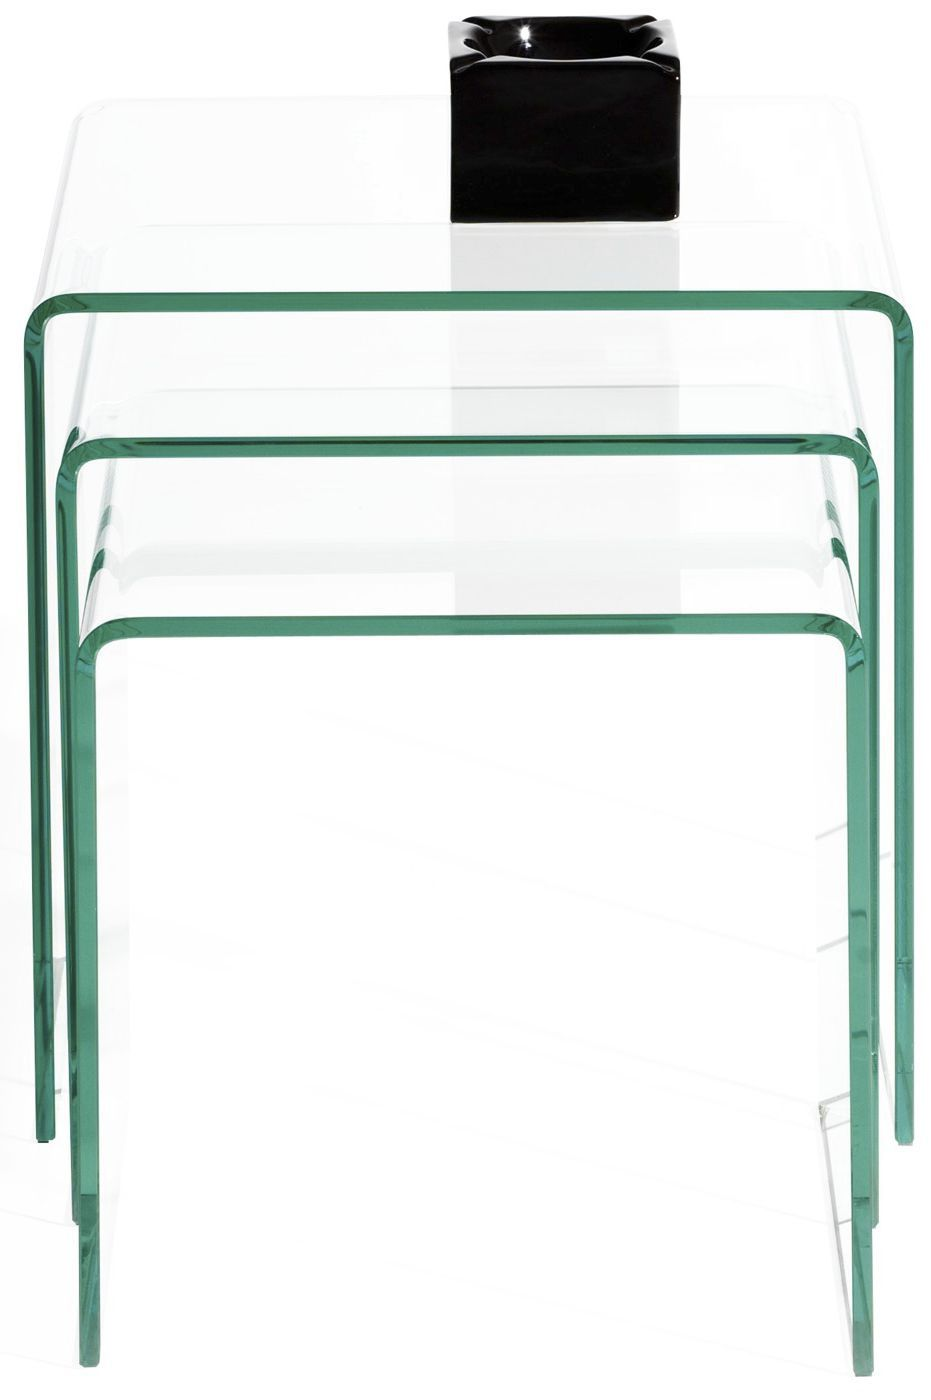 Delicieux Contemporary Nesting Tables / Glass / Rectangular